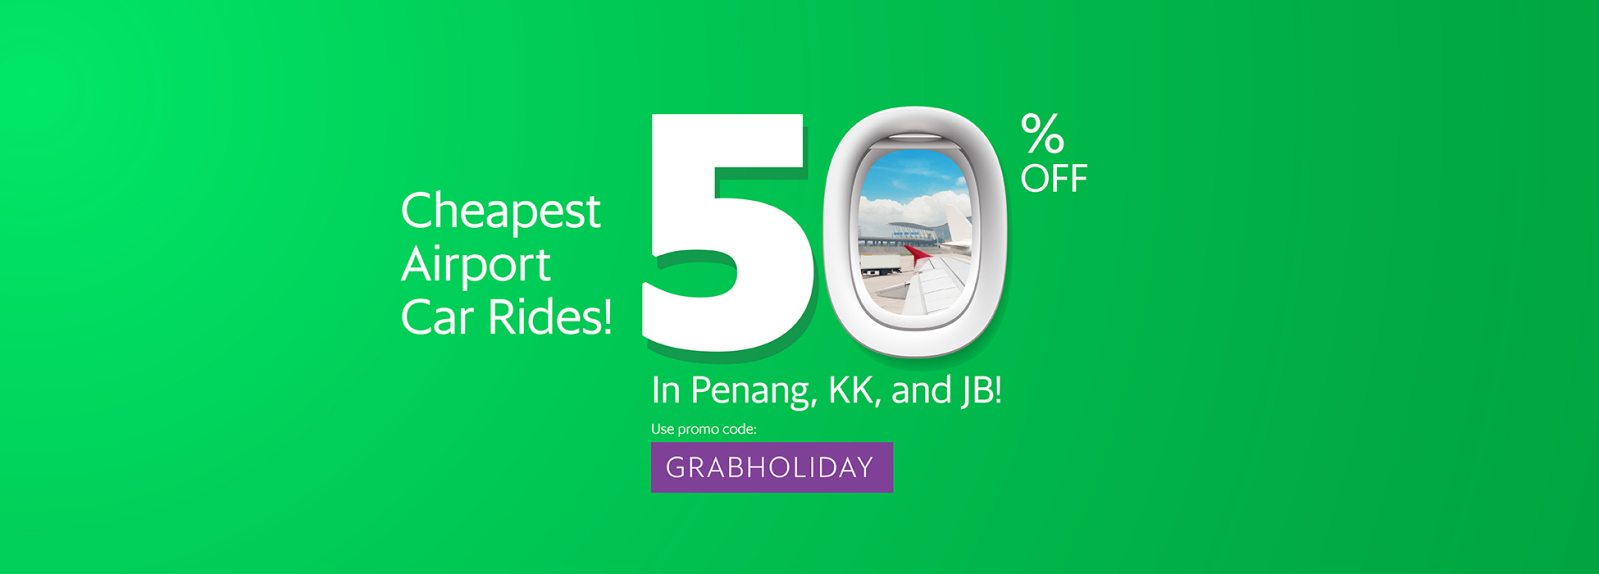 GrabCar Offers RM20 Discount For Rides To The Airport This